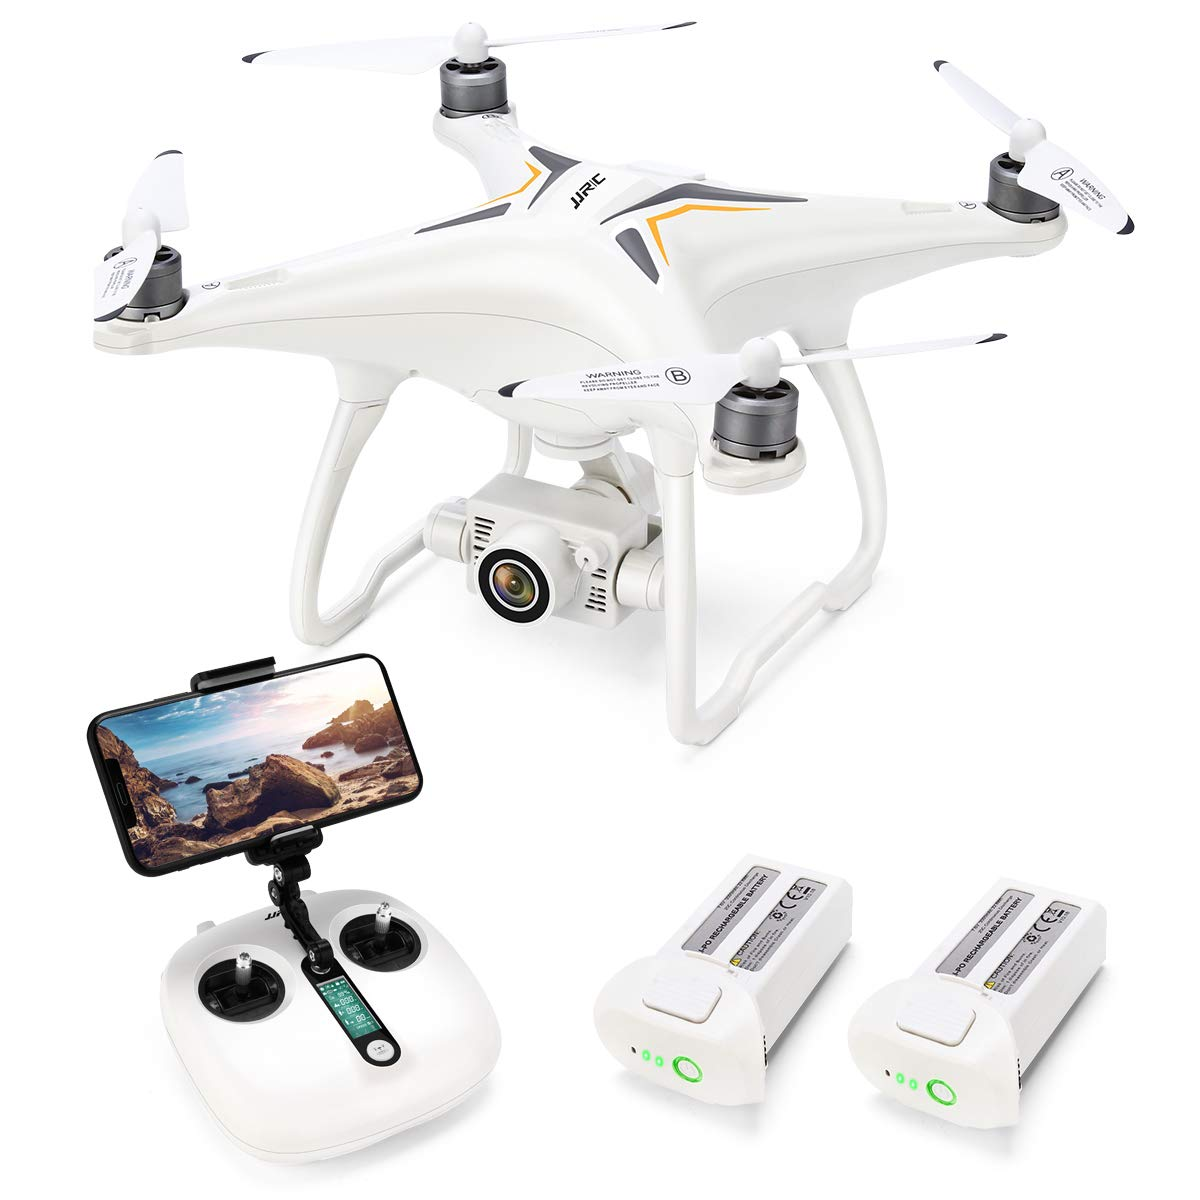 Drone with 1080P Camera with 2-Axis Self-stabilizing Gimbal 5G FPV Live Video and GPS Return Home, JJRC JJPRO X6 RC Quadcopter for Adults with Brushless Motor in 23+23 Mins Flight Time, Follow me